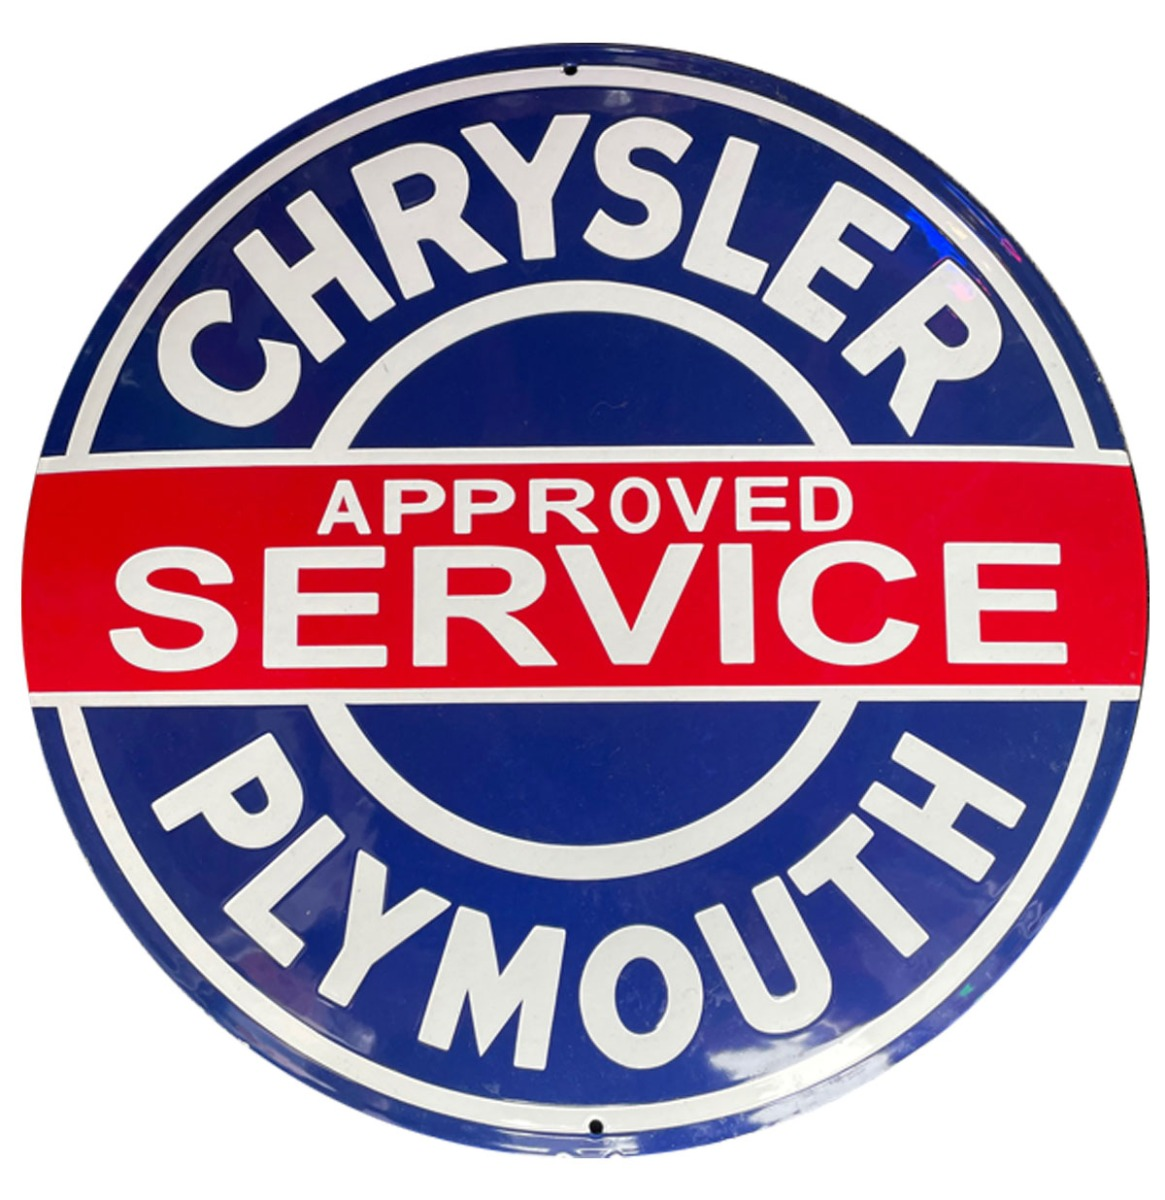 Chrysler Plymouth Approved Service Emaille Bord - 50 cm ø